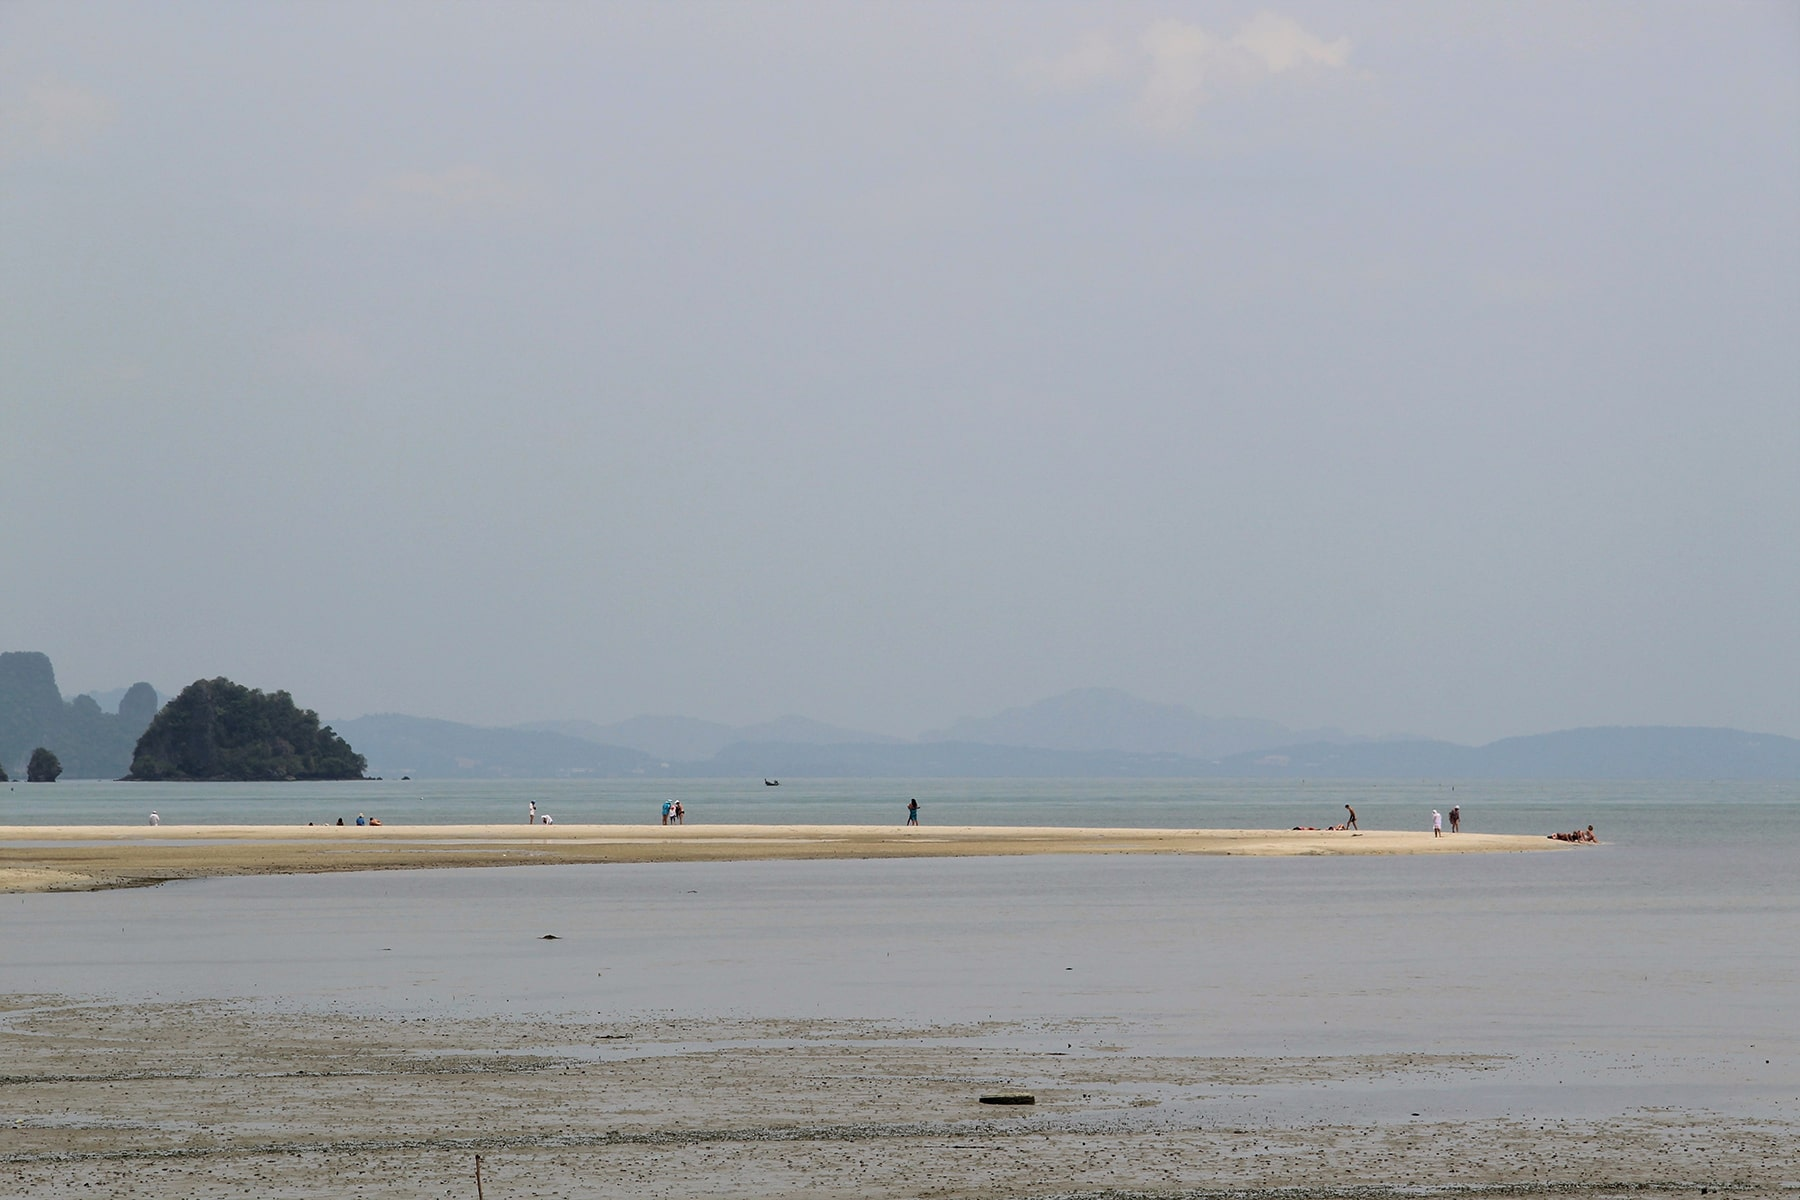 The strip of beach with low tide at Laem Had Beach - Koh Yao Yai island